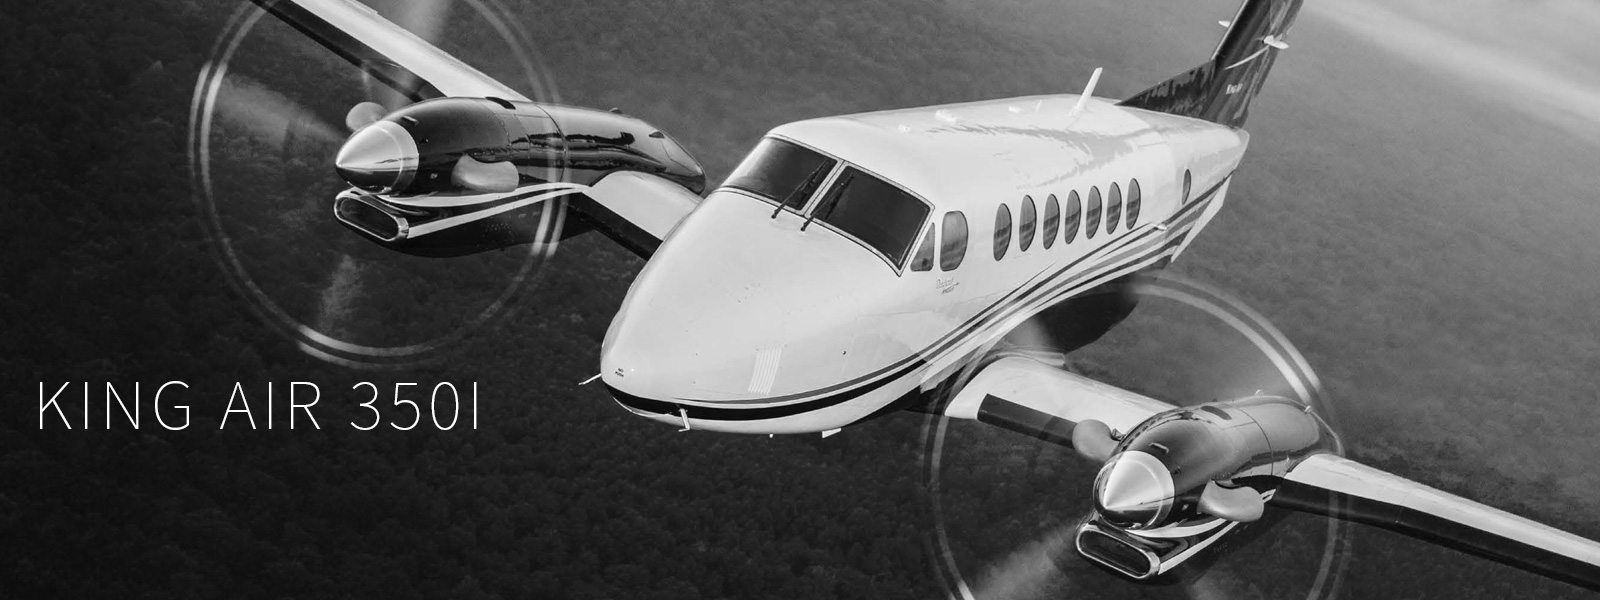 New King Air 350i Aircraft sales, Collision avoidance